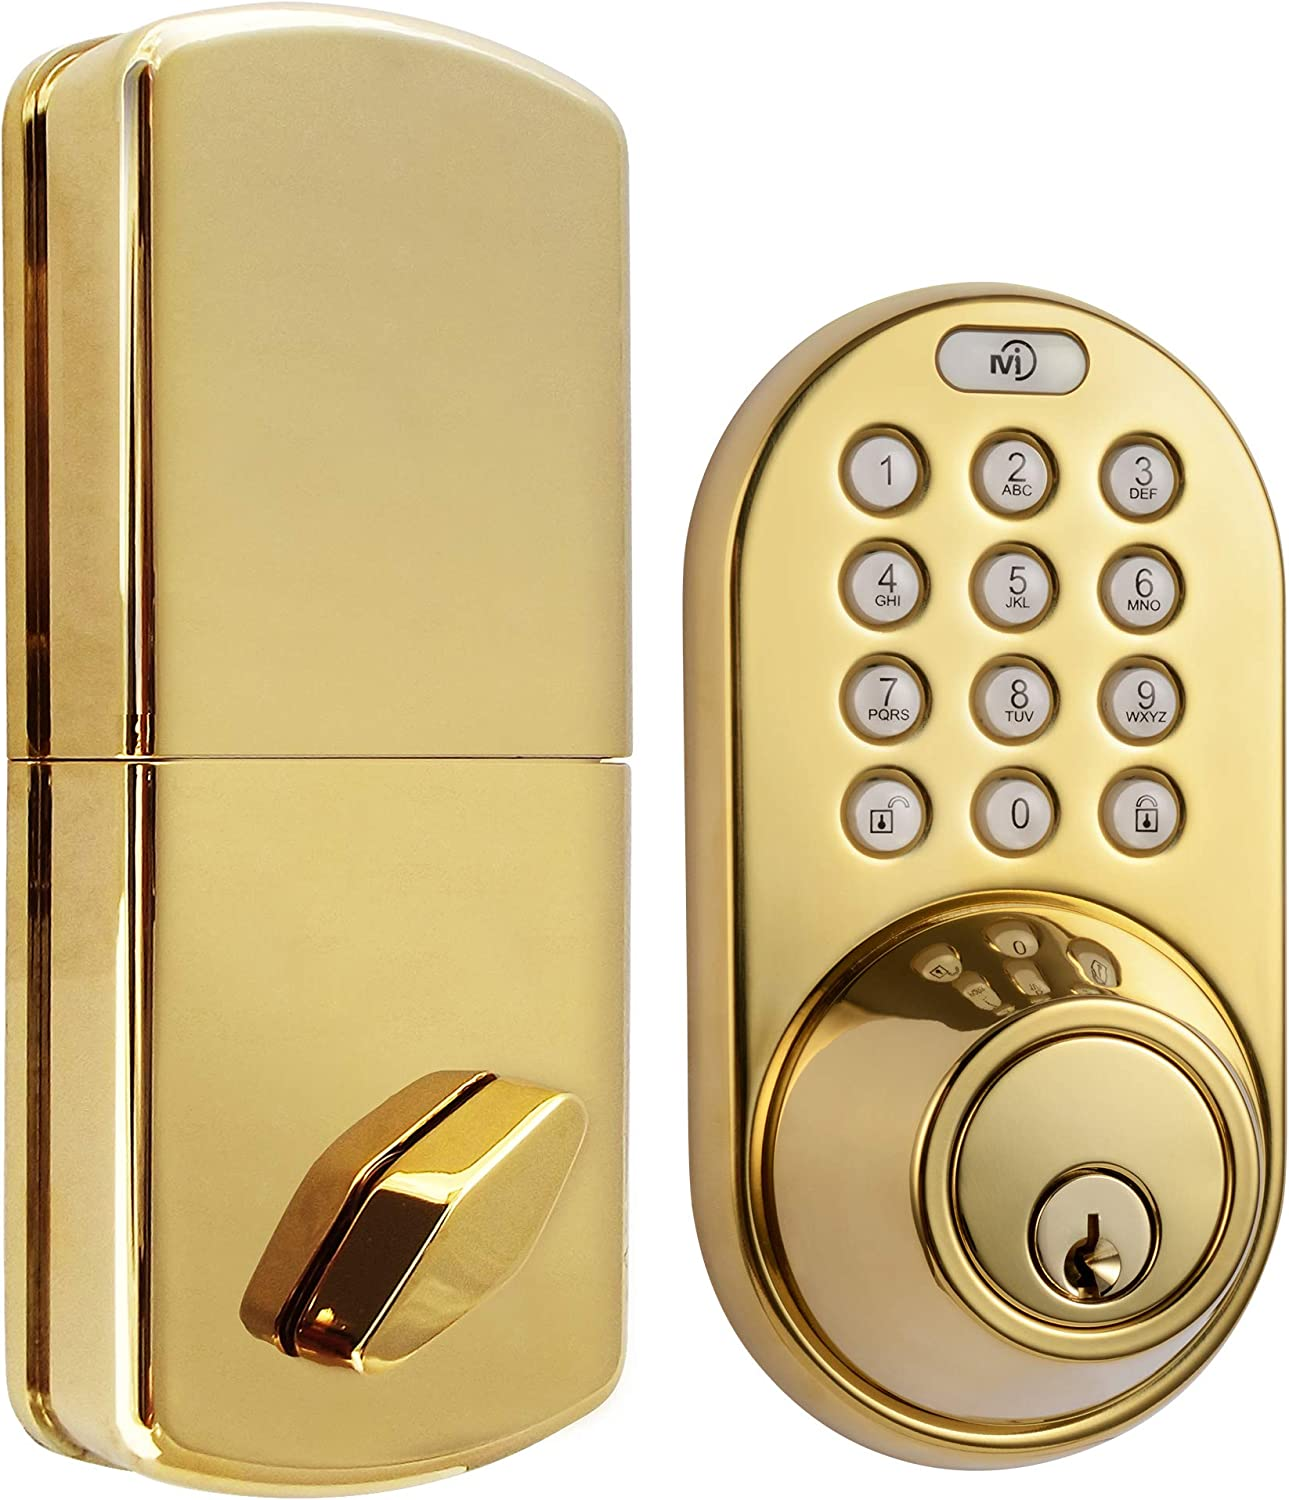 MiLocks TF-02P Digital Deadbolt Door Lock with Electronic Keypad for Exterior Doors, Polished Brass